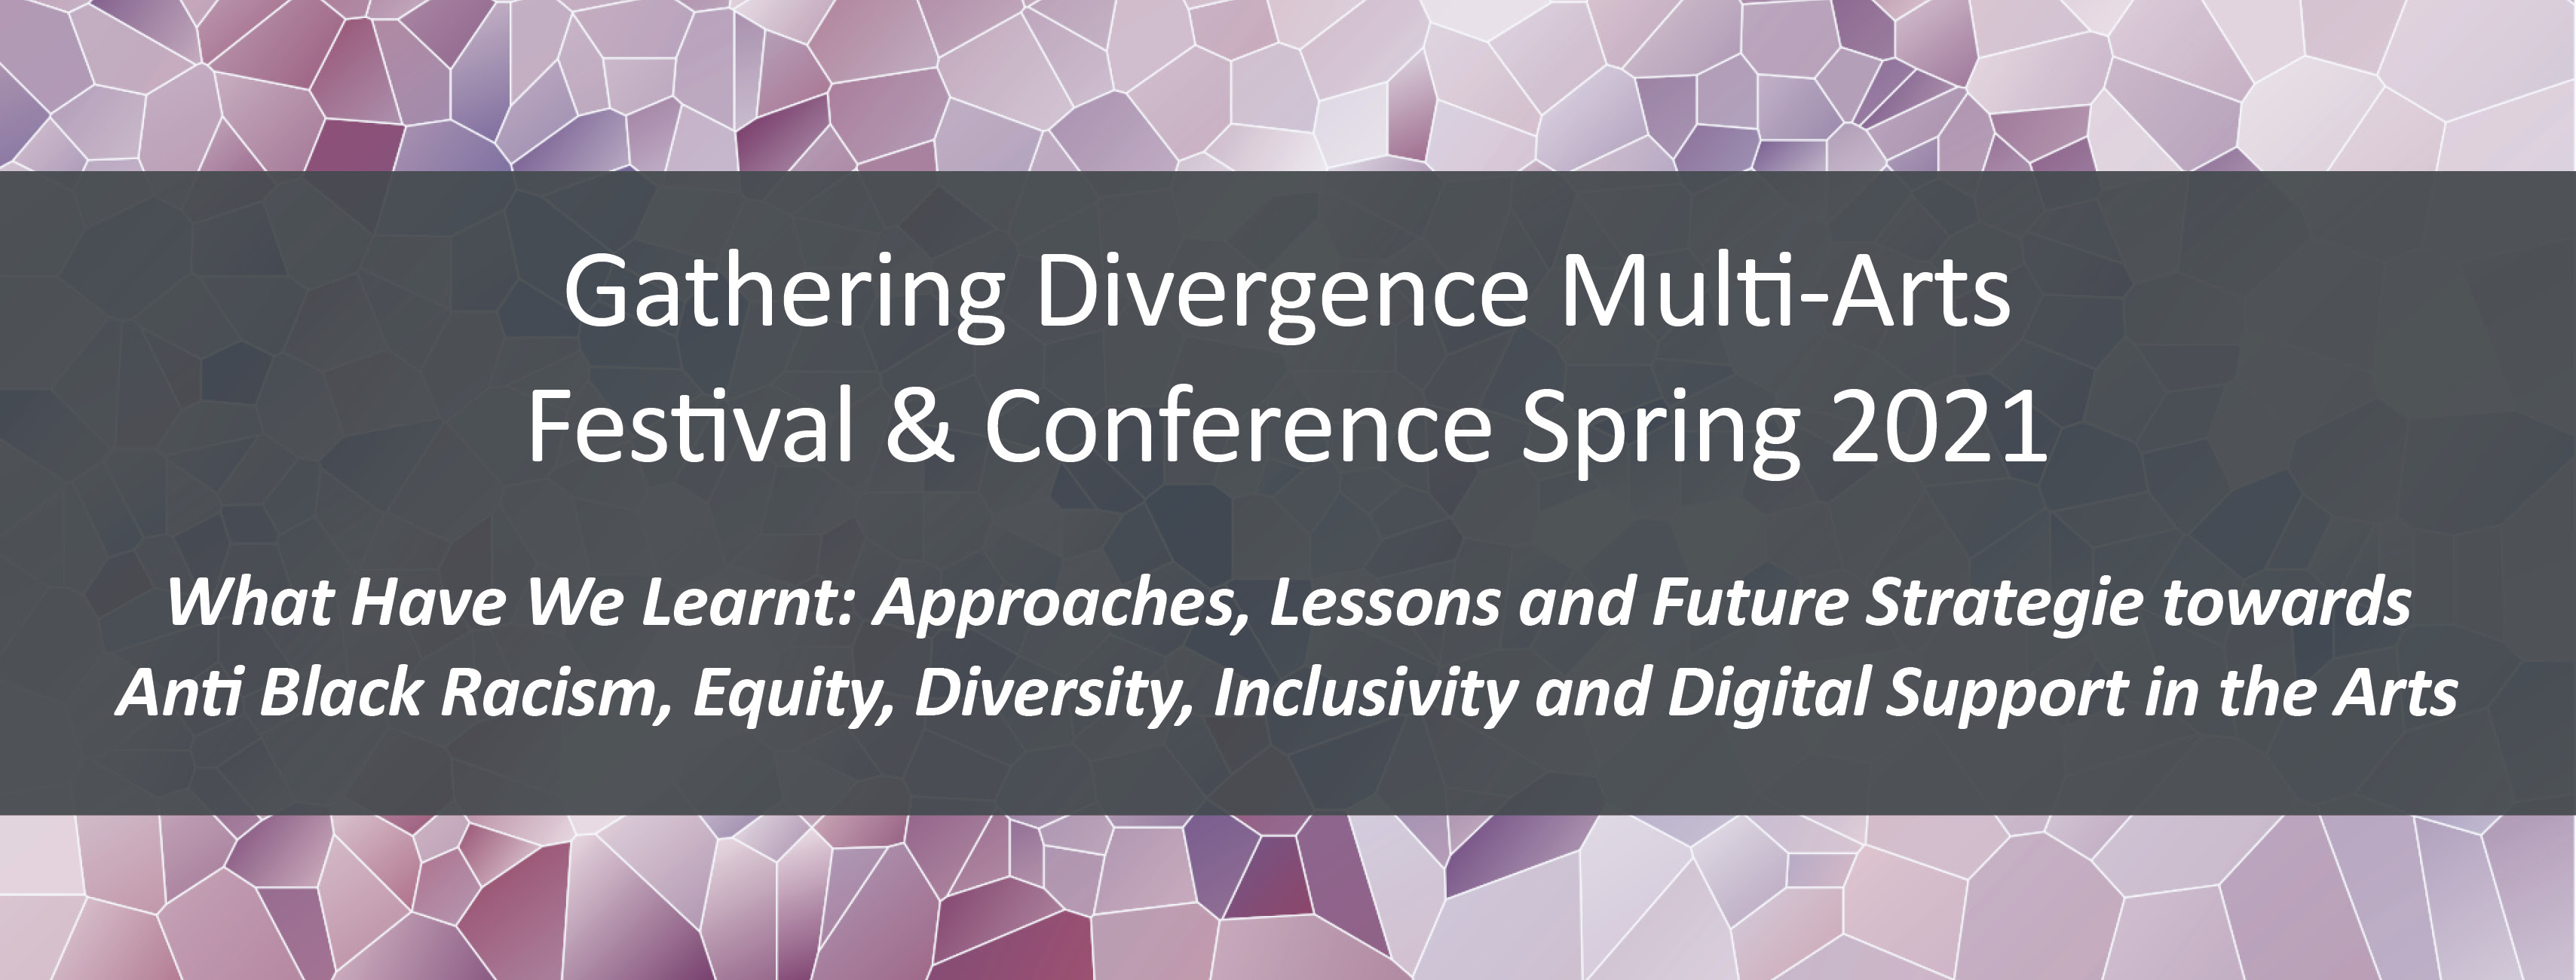 The Gathering Divergence Multi – Arts Festival and Conference |  What Have We Learnt: Approaches, Lessons and Future Strategies towards Anti Black Racism, Equity, Diversity, Inclusivity and Digital Support in the Arts